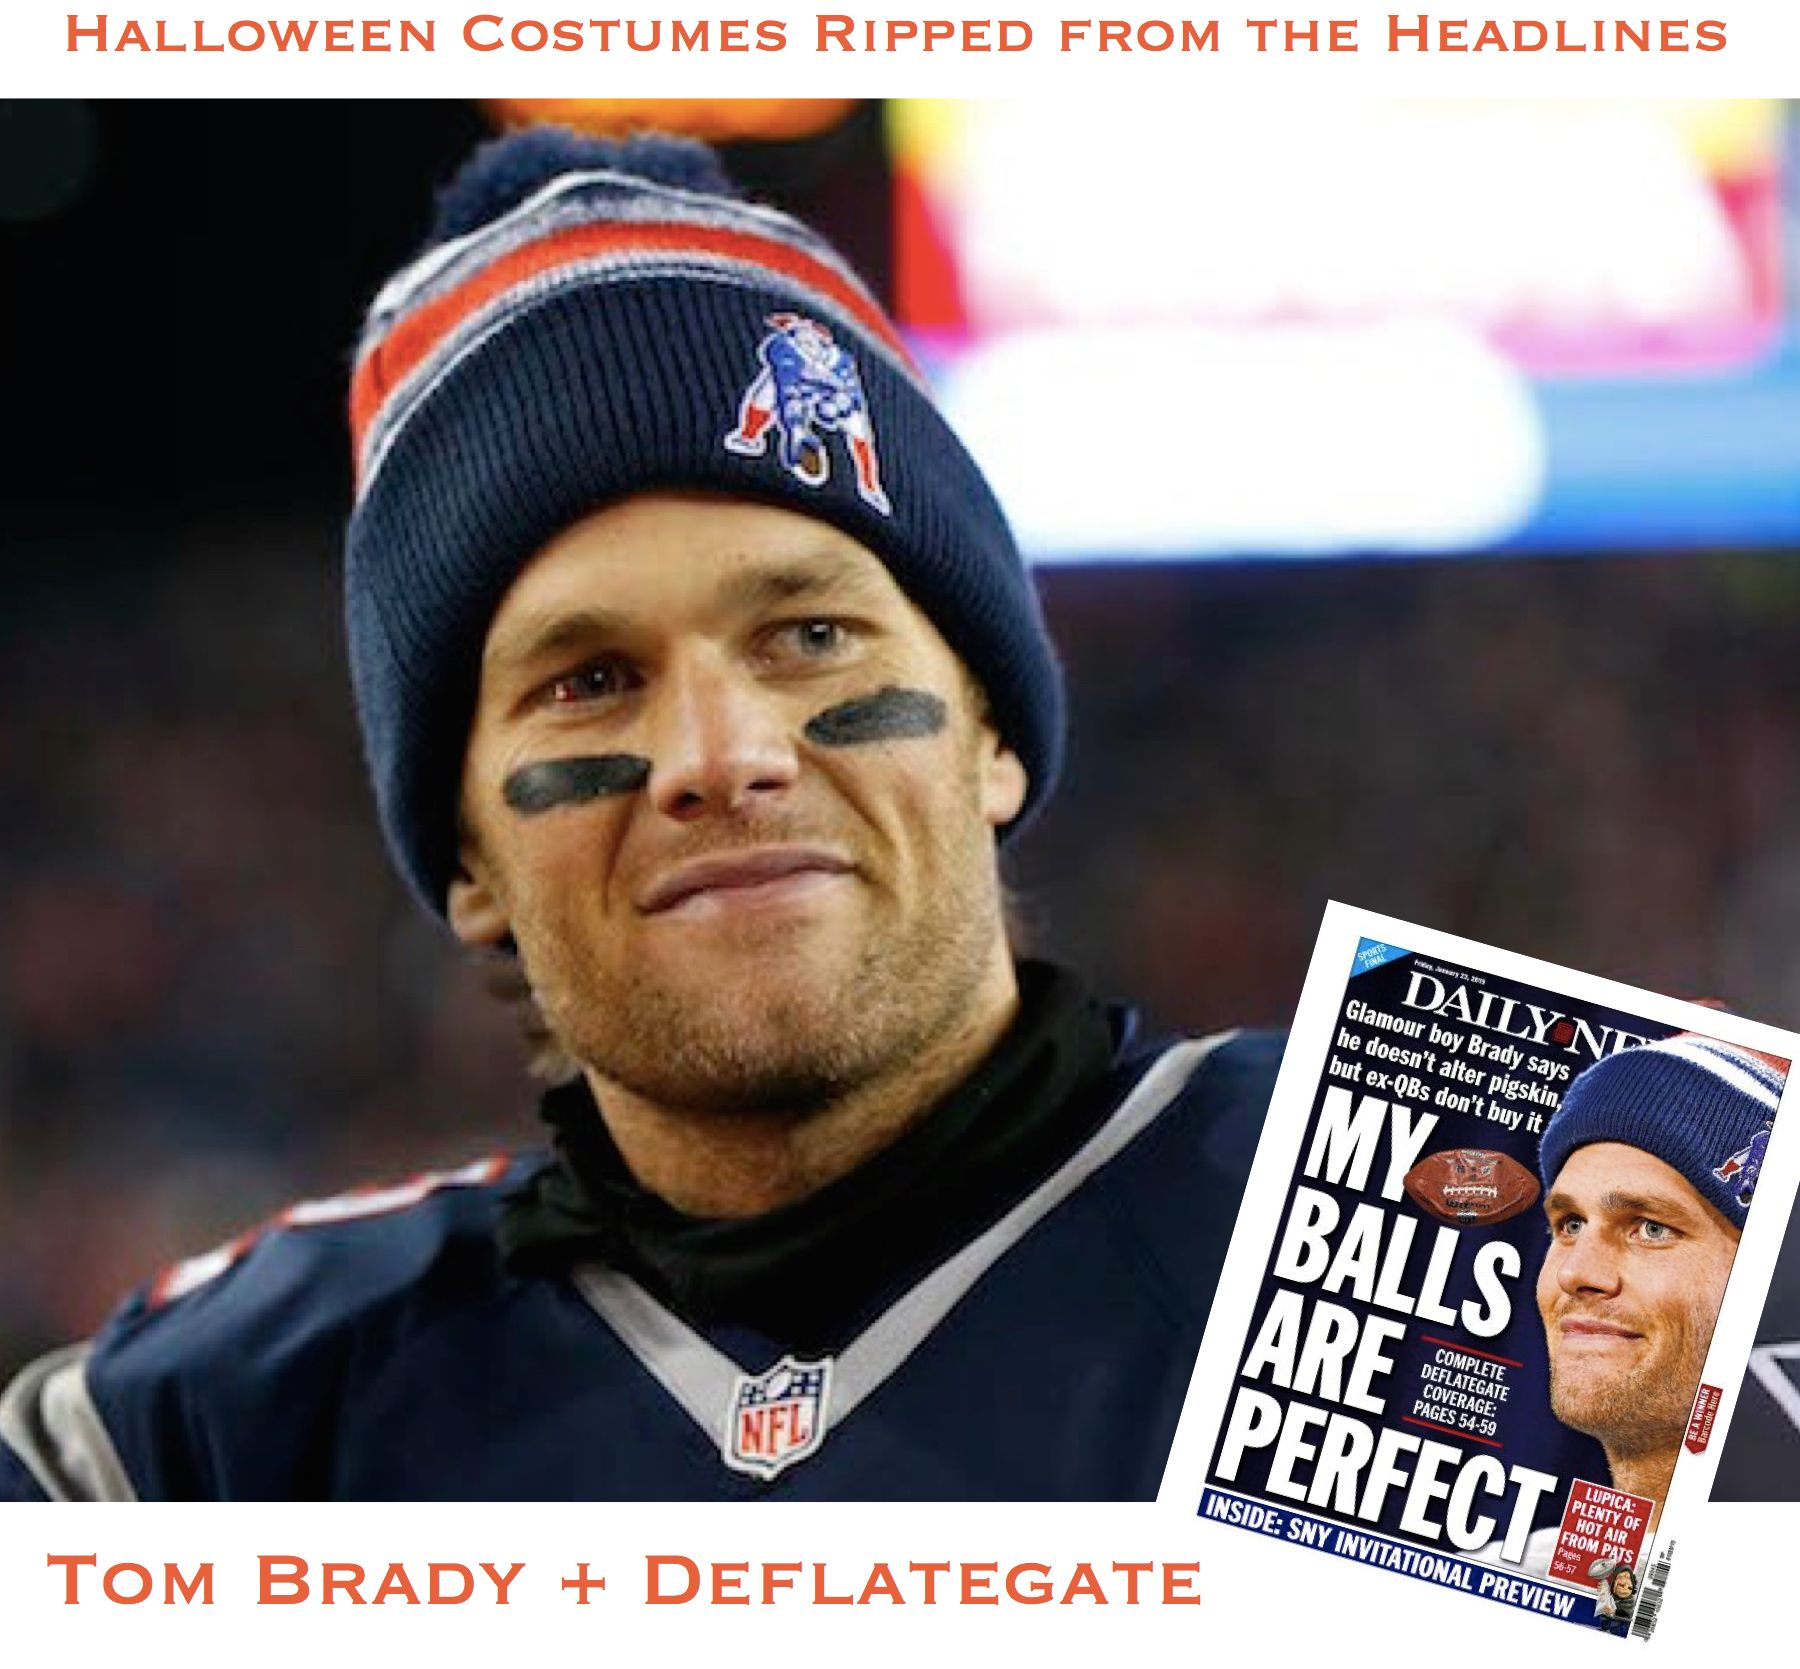 Halloween Costumes Ripped from the Headlines >> Tom Brady ...